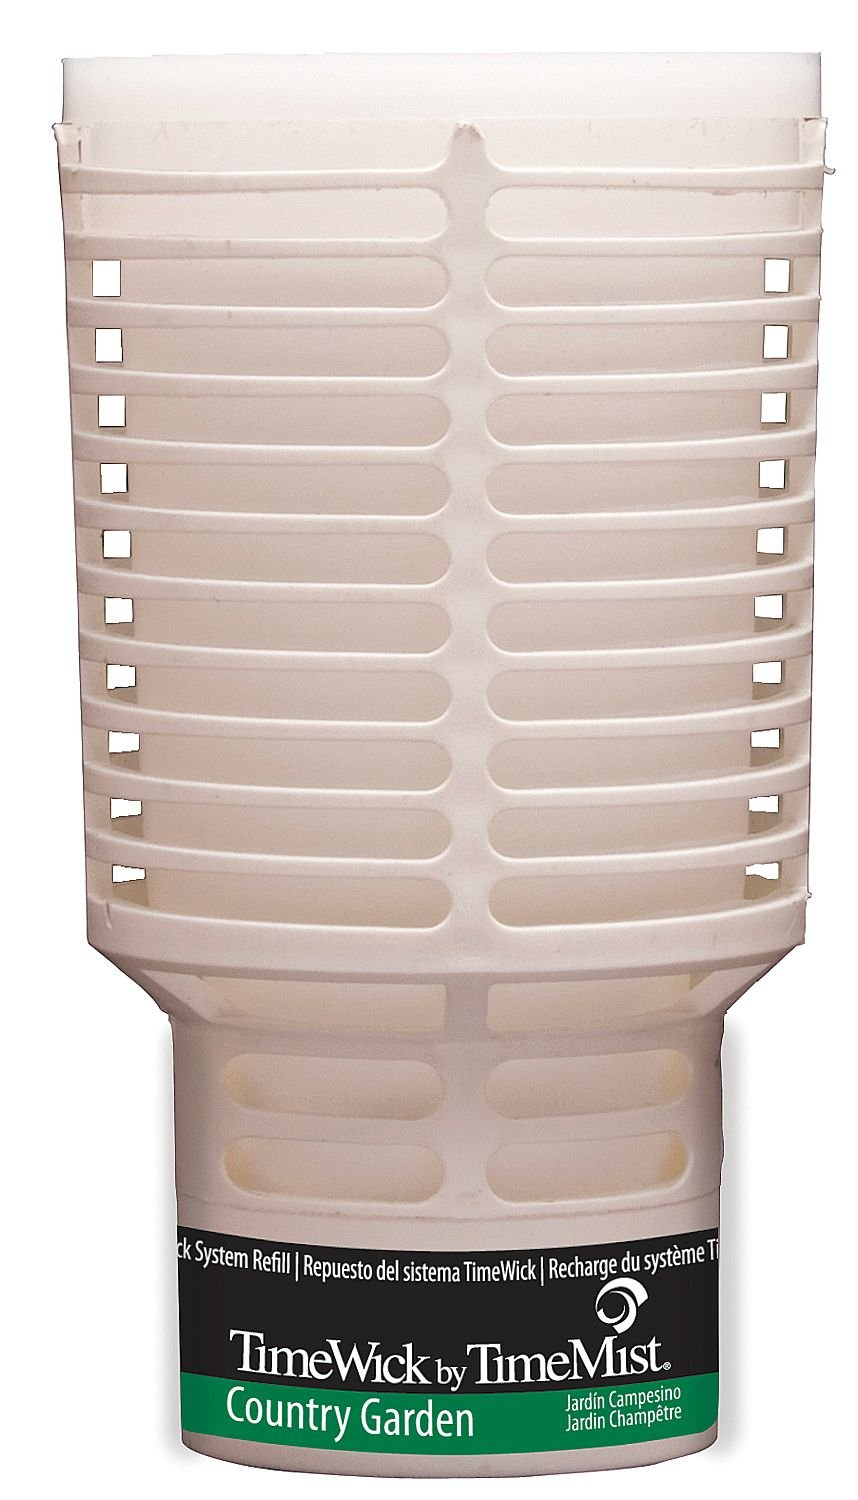 TimeMist 1043702 TimeWick Dispenser Refill, Country Garden (Case of 6)